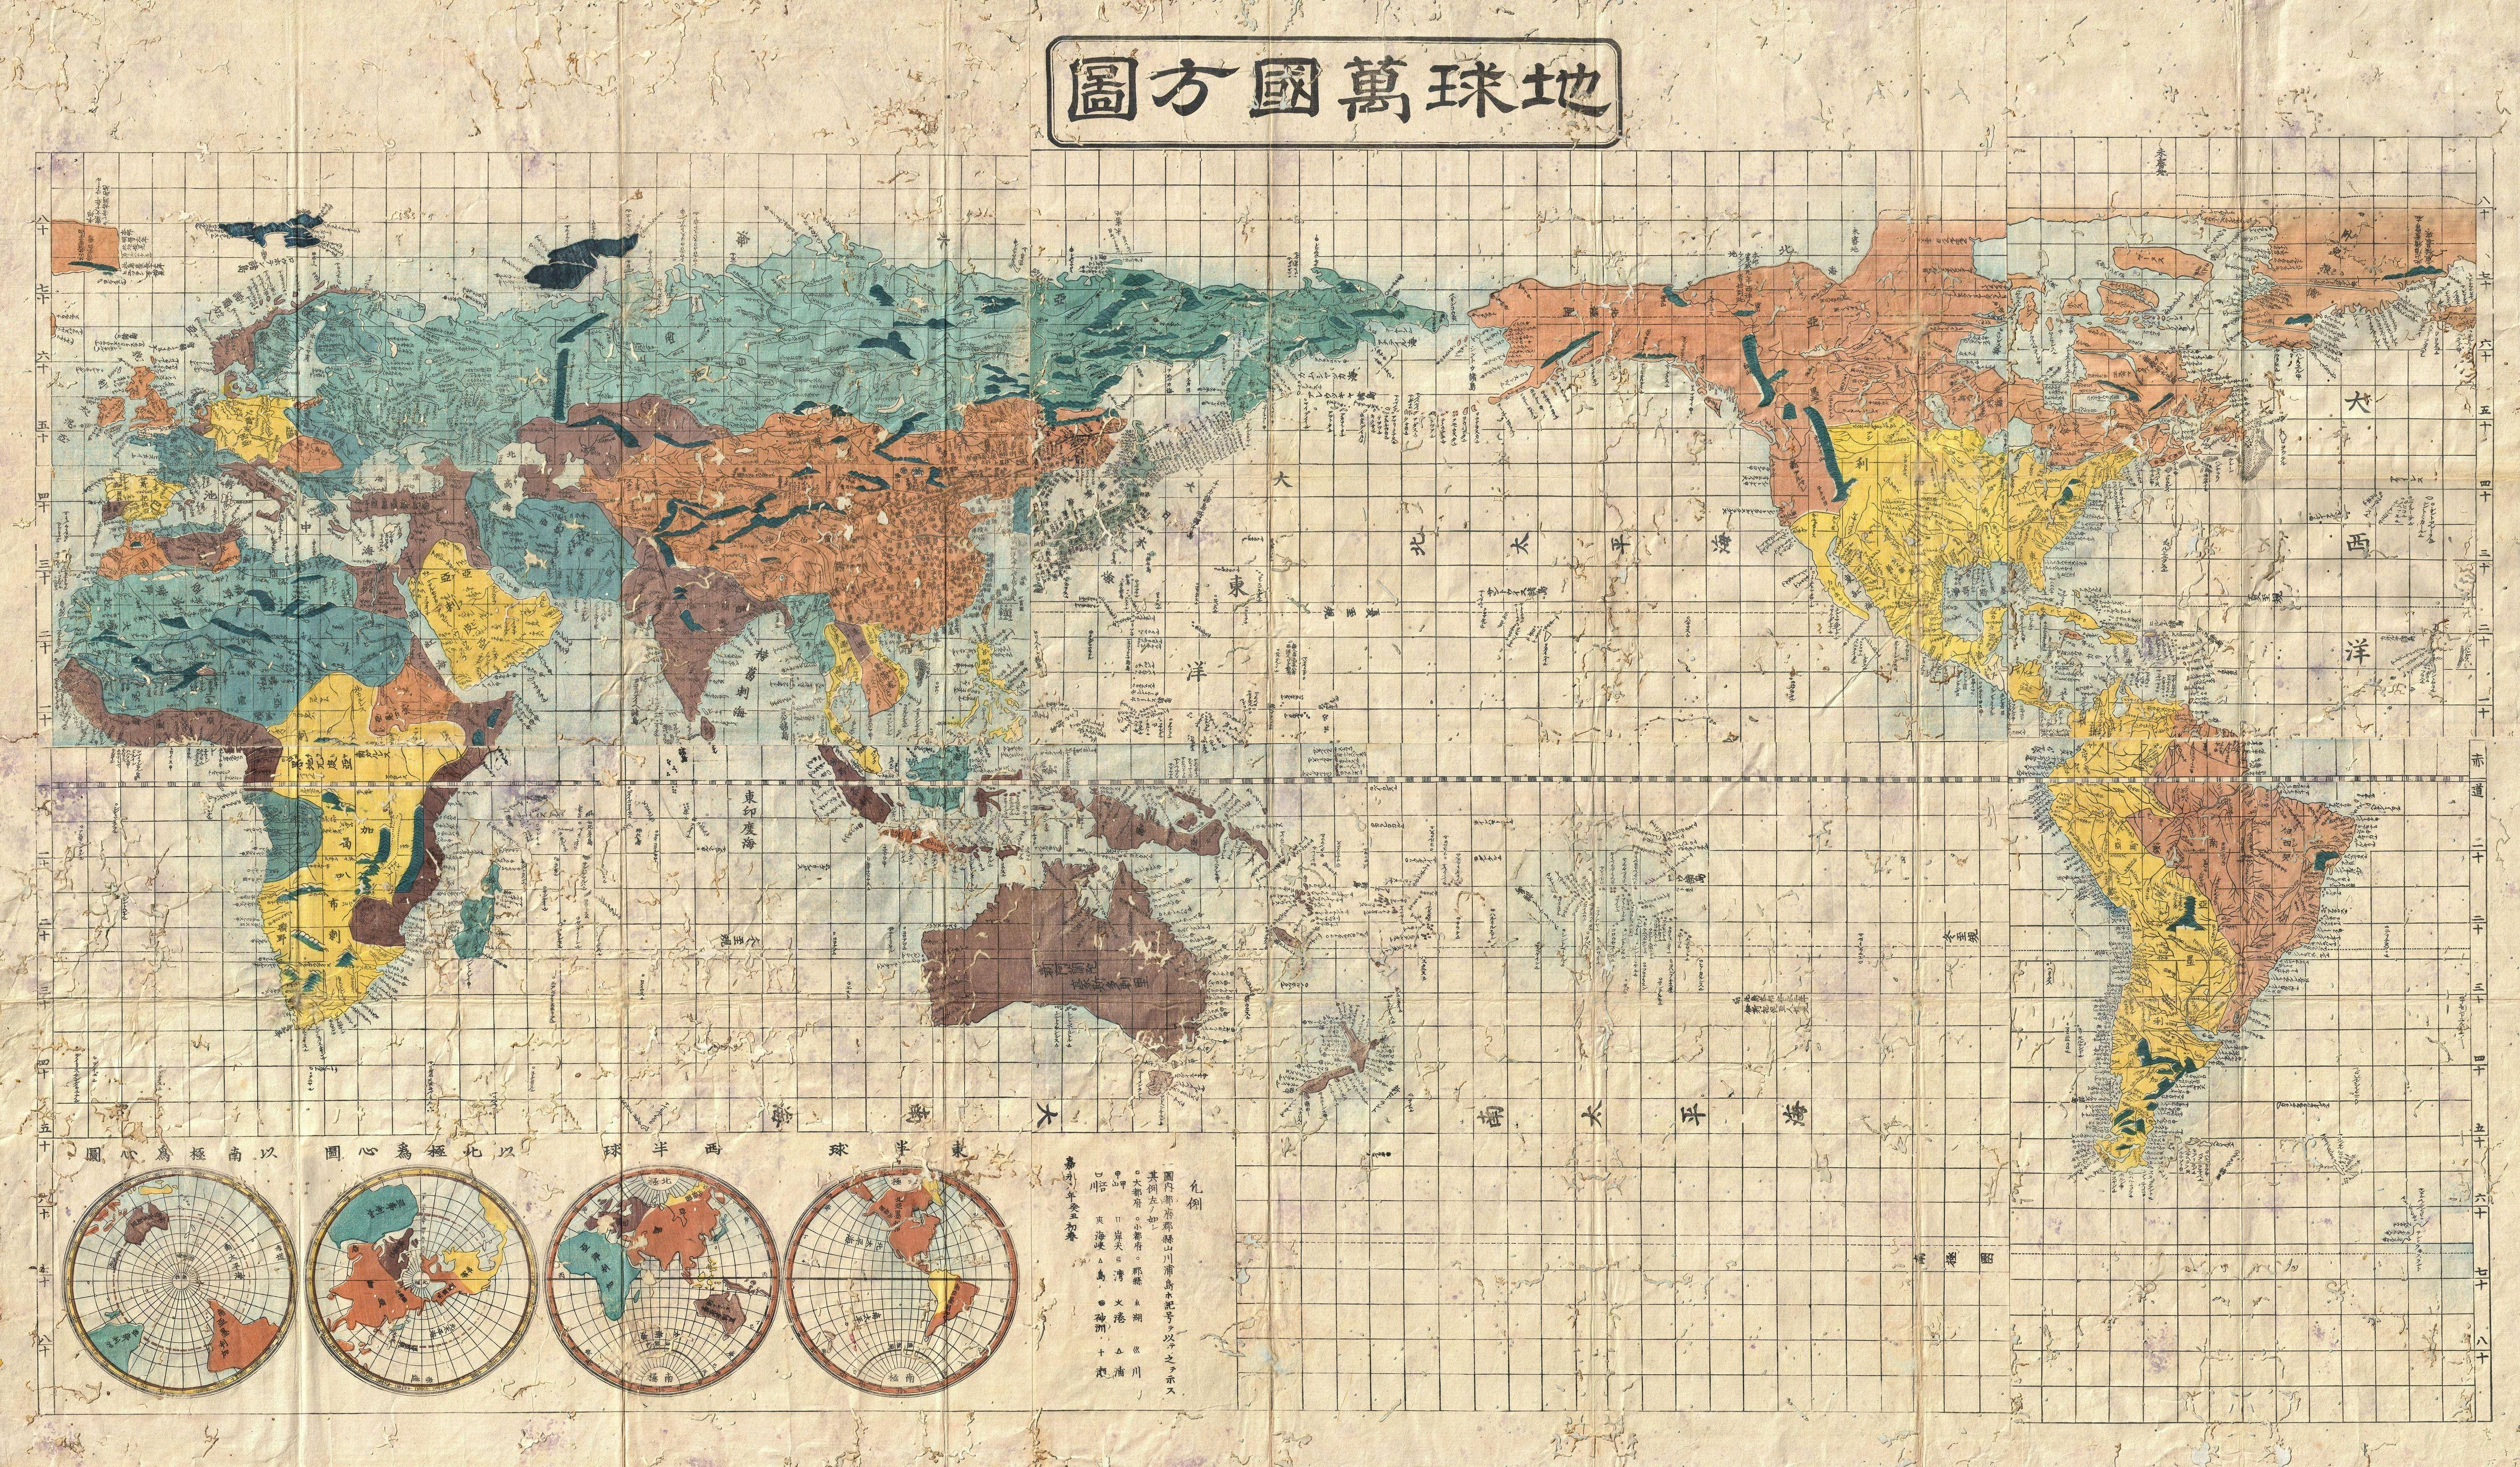 1853 japanese world map interesting maps pinterest japanese 1853 japanese world map gumiabroncs Gallery